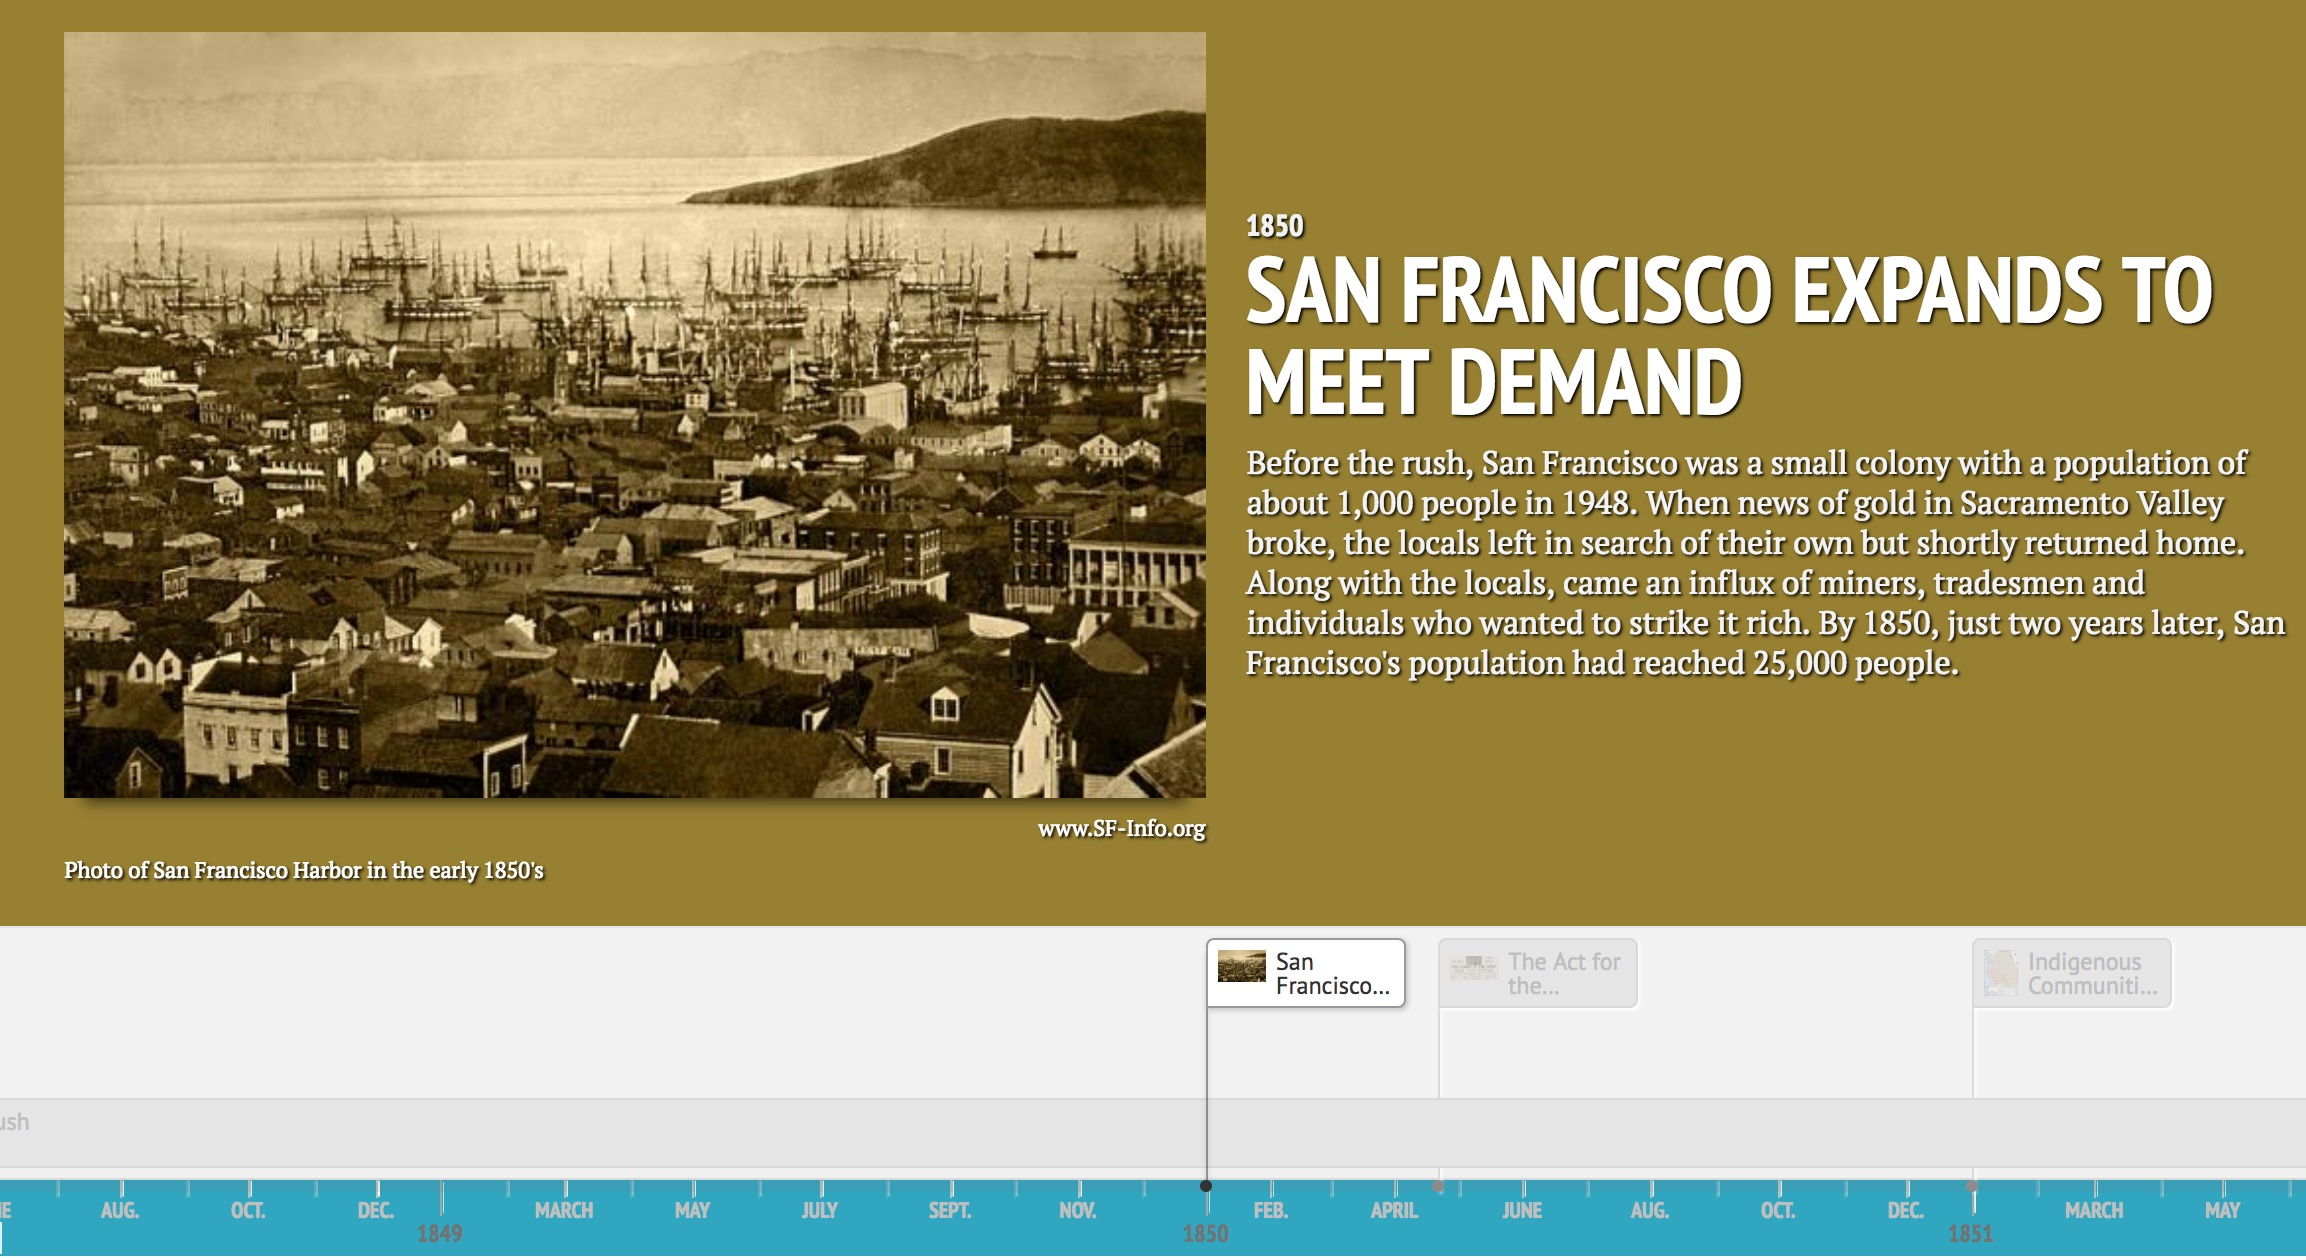 Image From Gold Rush Timeline